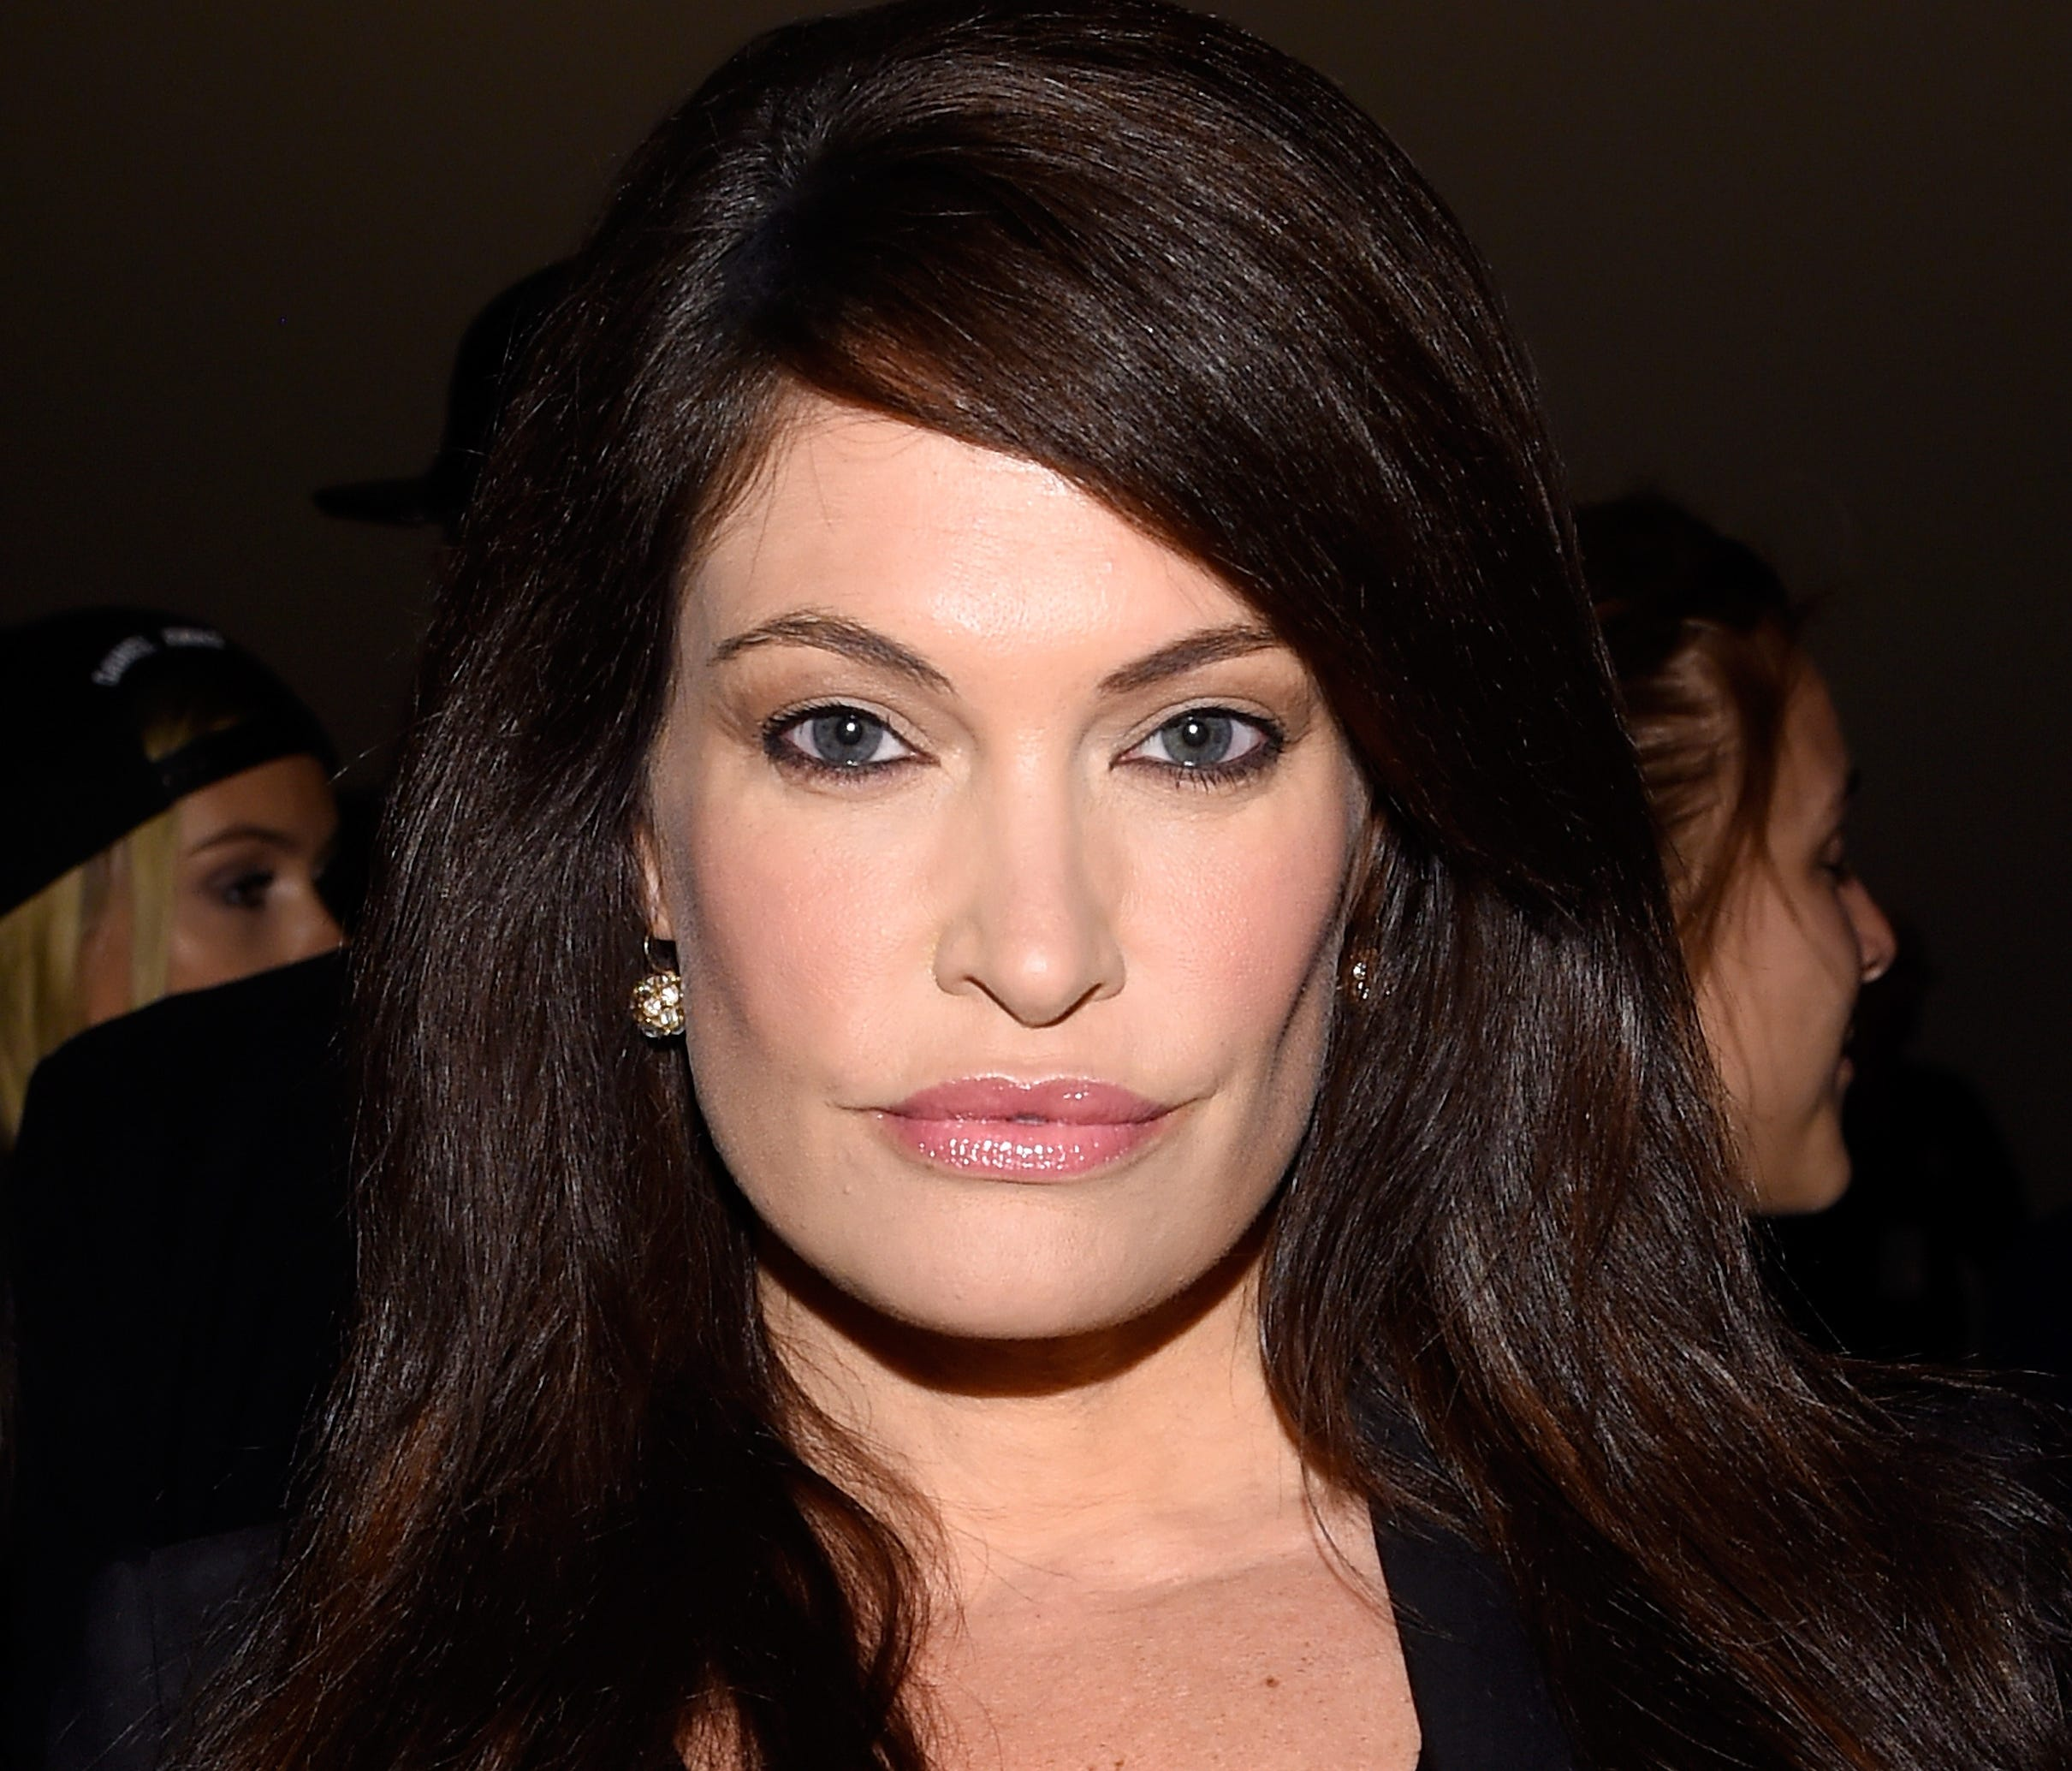 Kimberly Guilfoyle attends the Vivienne Tam fashion show during Mercedes-Benz Fashion Week Spring 2015 at The Theatre at Lincoln Center on September 7, 2014 in New York City.